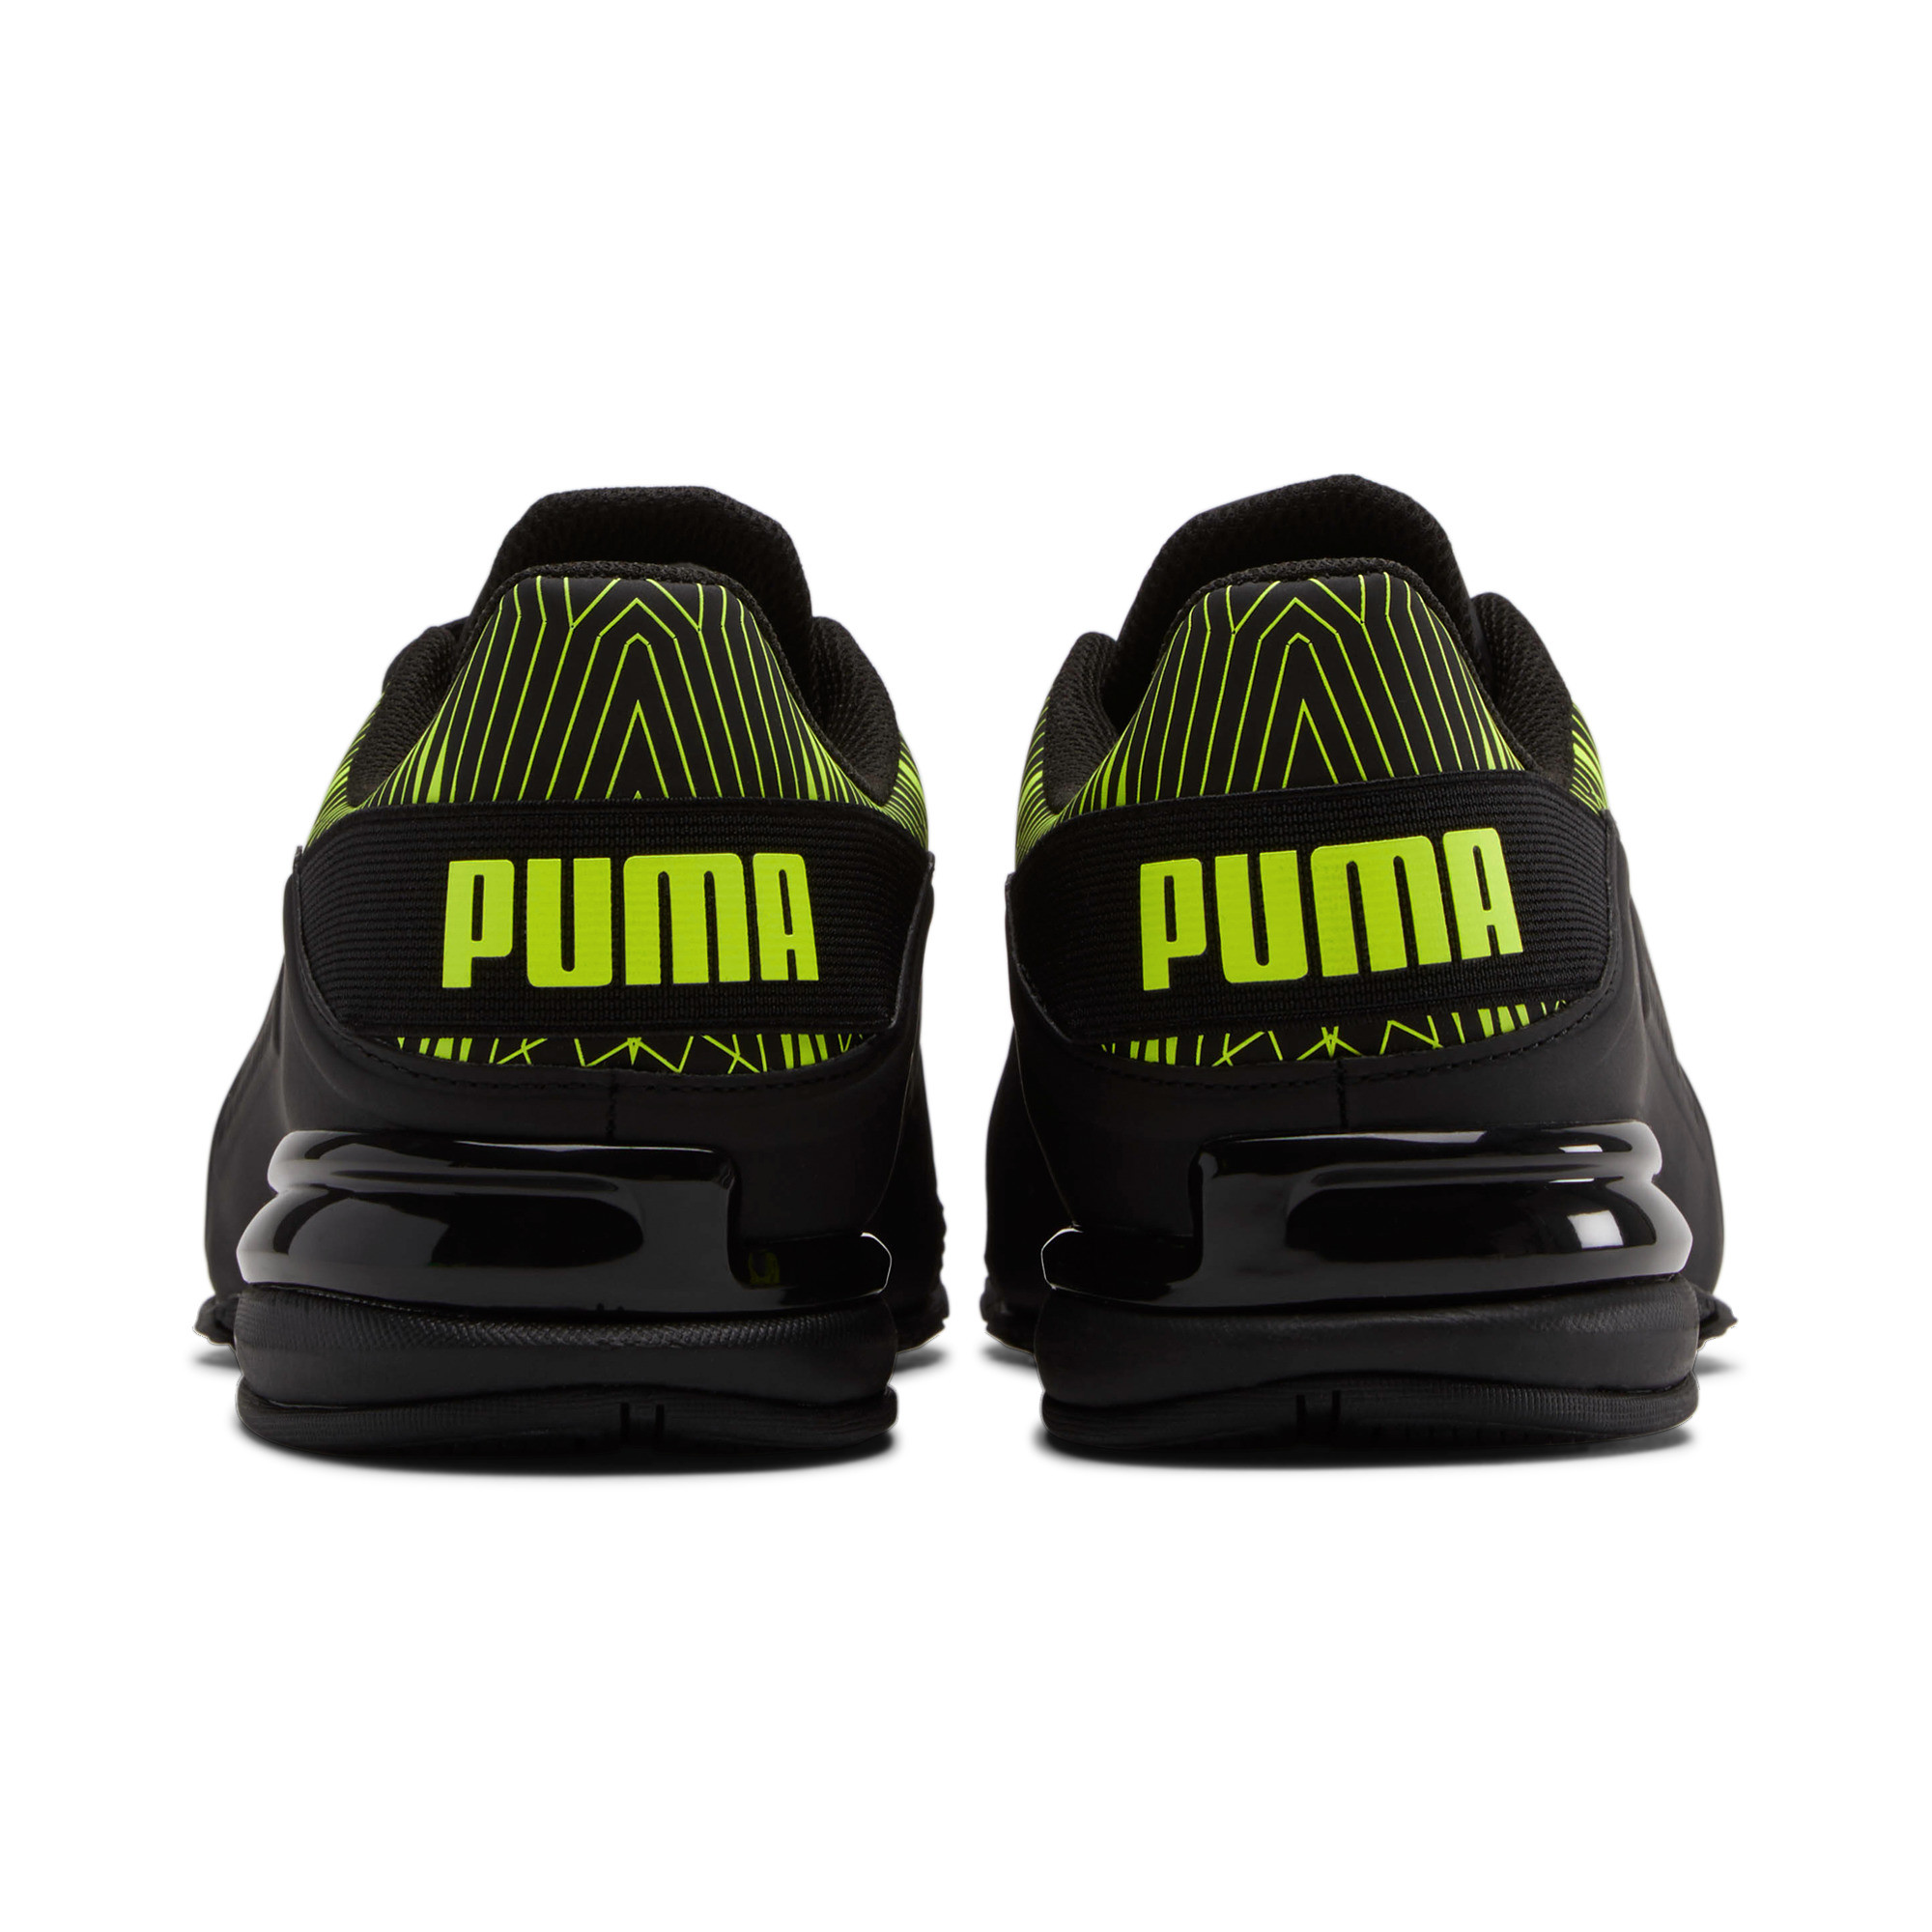 PUMA-Men-039-s-Viz-Runner-Graphic-Sneakers thumbnail 3